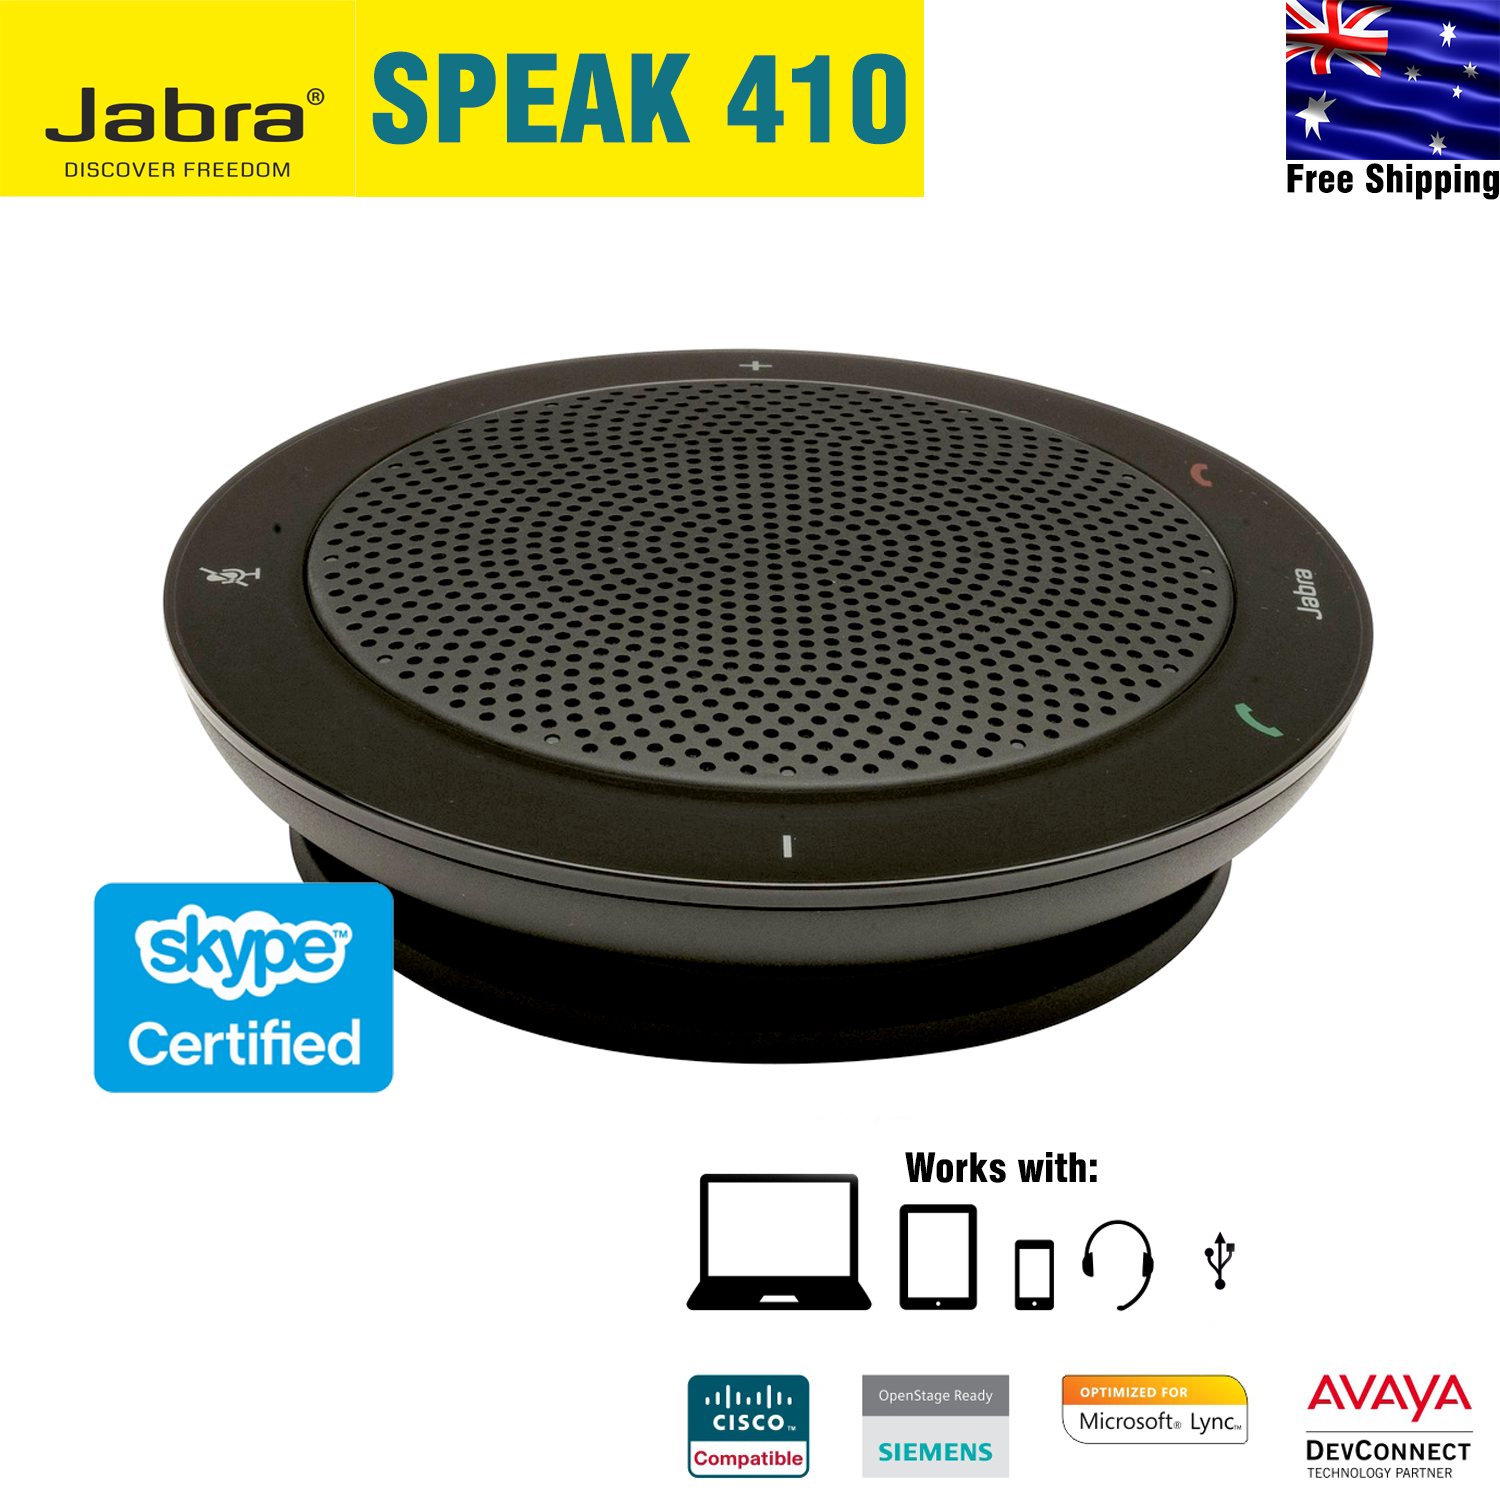 Jabra Speak 410 for PC USB Speakerphone with 3 5mm for Headset Connect,  Certified for Skype for Business, Black